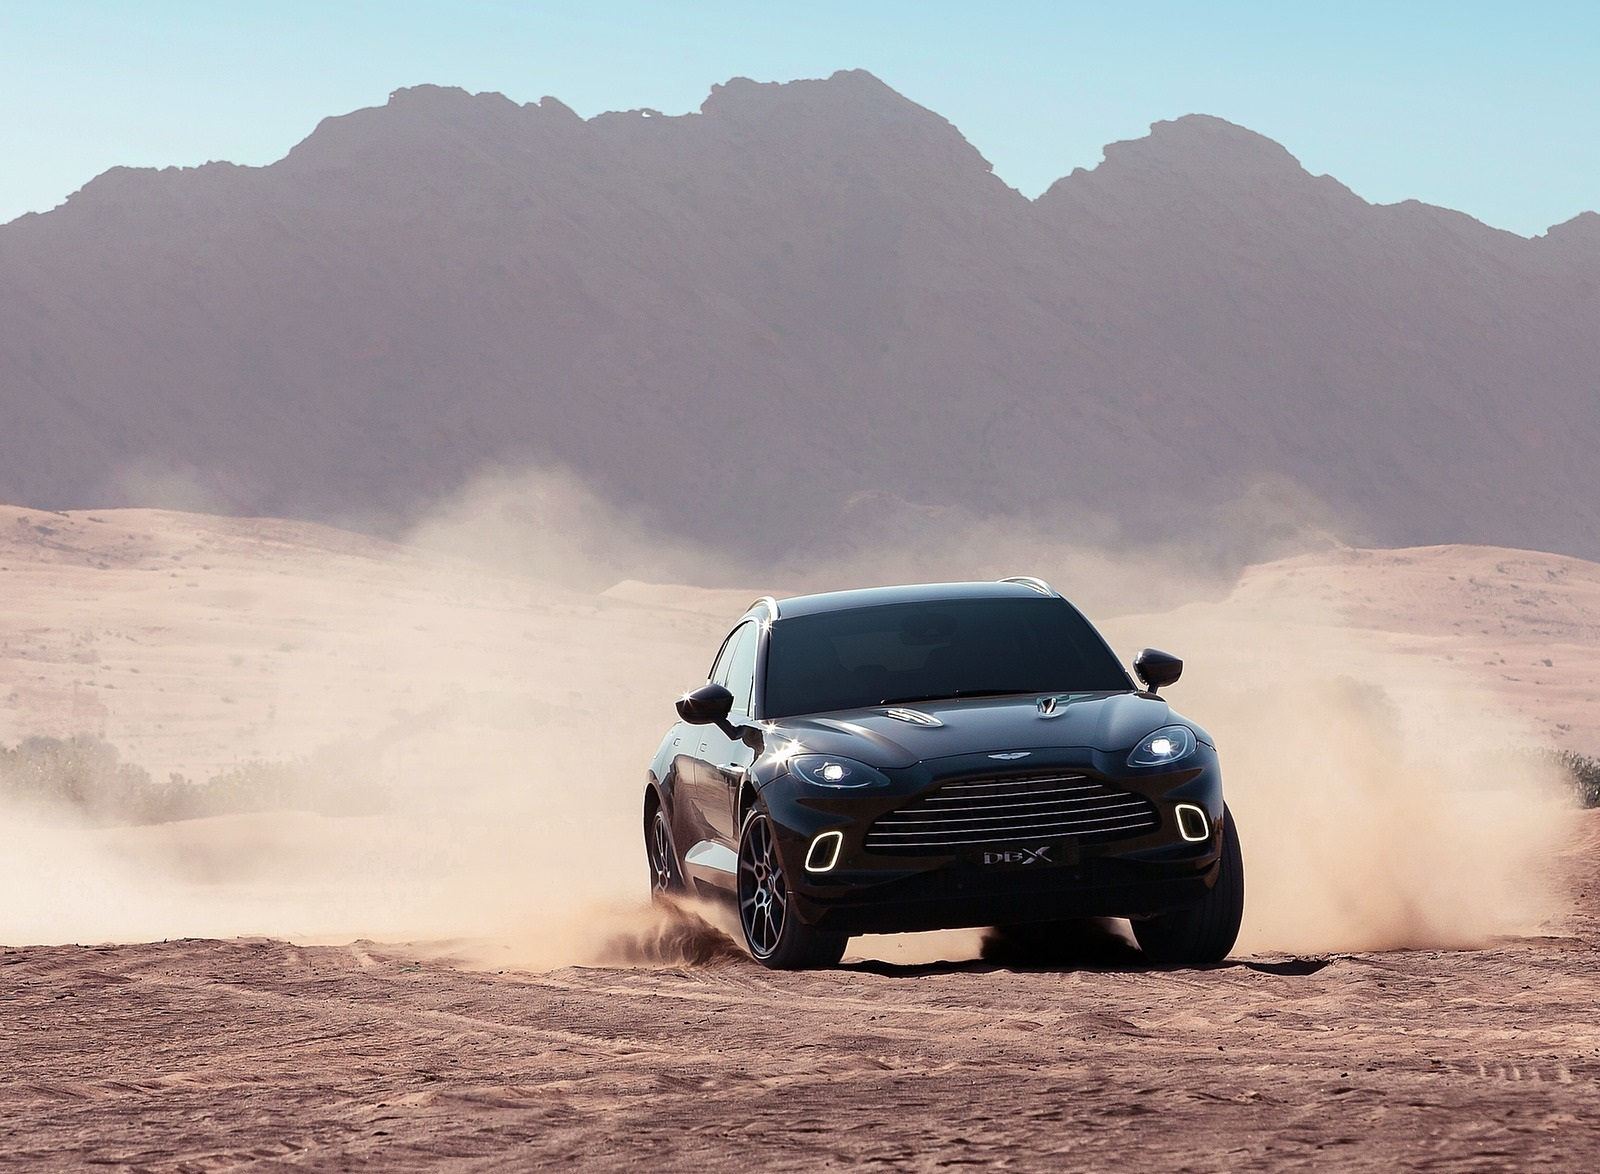 2021 Aston Martin DBX Off-Road Wallpapers (5)